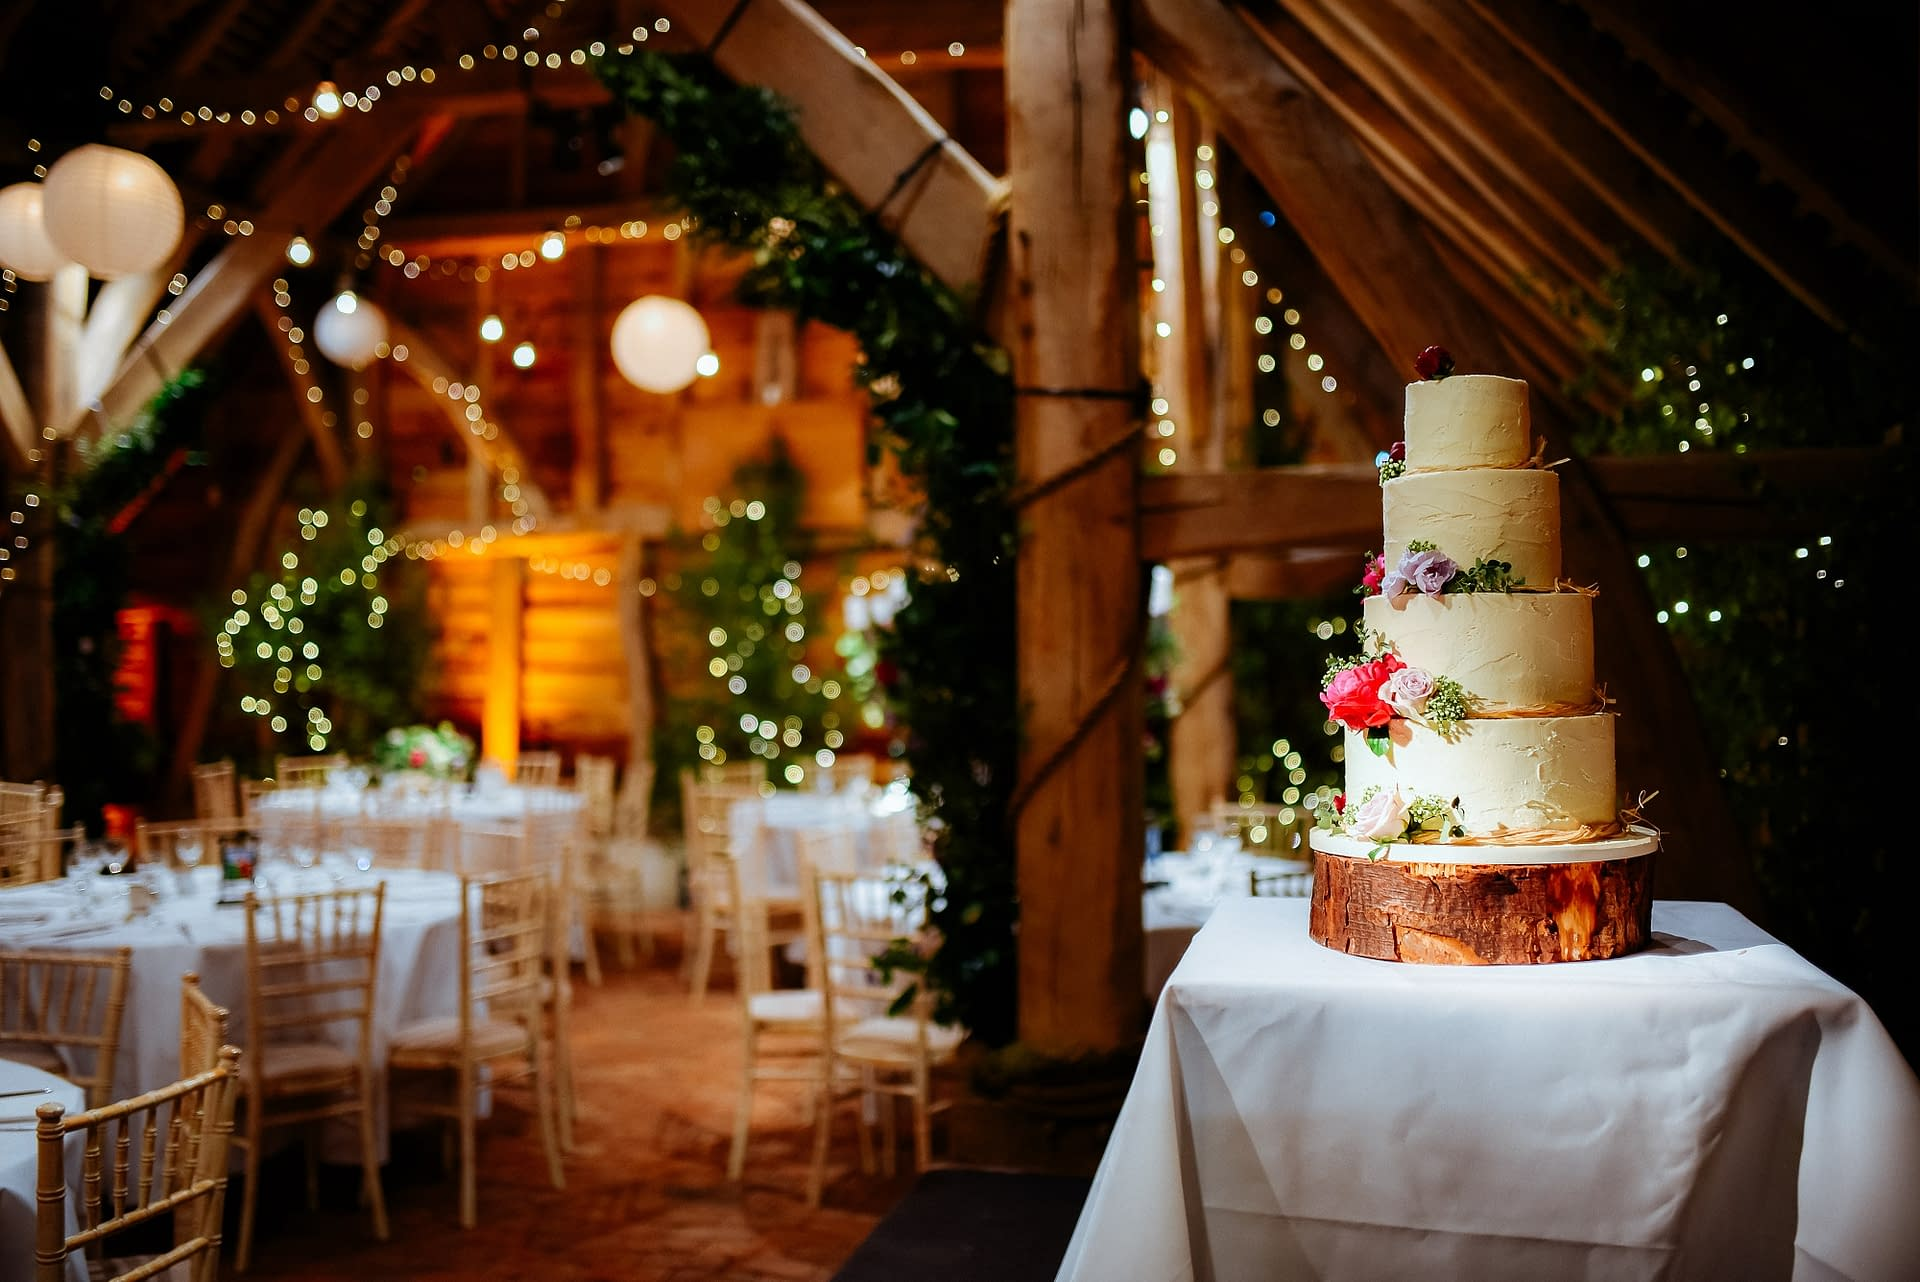 Festoon lighting with paper lanterns combined with birch trees and fairy lights at Gildings Farm, UK wedding venue